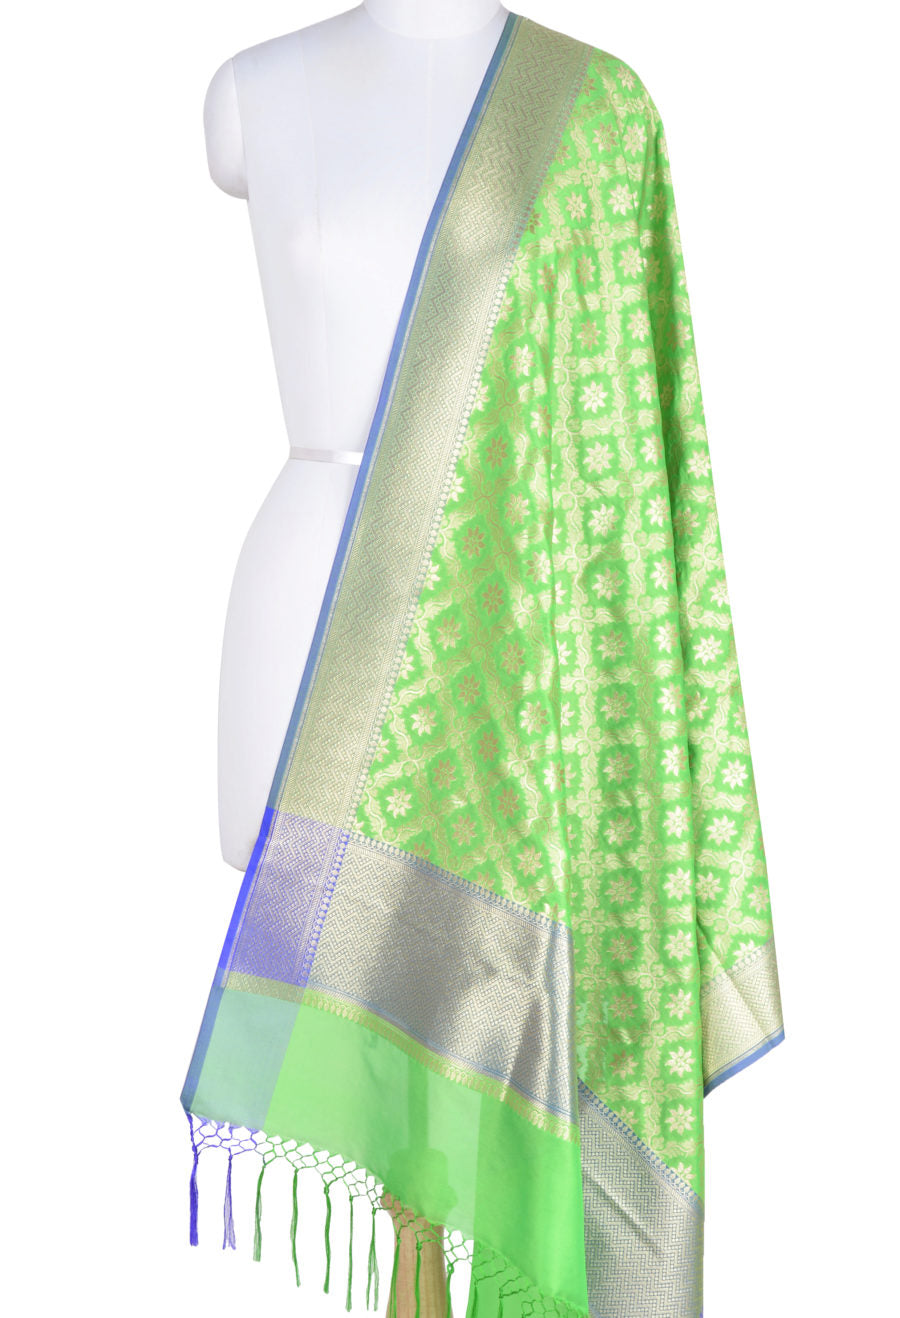 Parrot Green Art Silk Banarasi Dupatta with floral jaal and motifs (1) Main